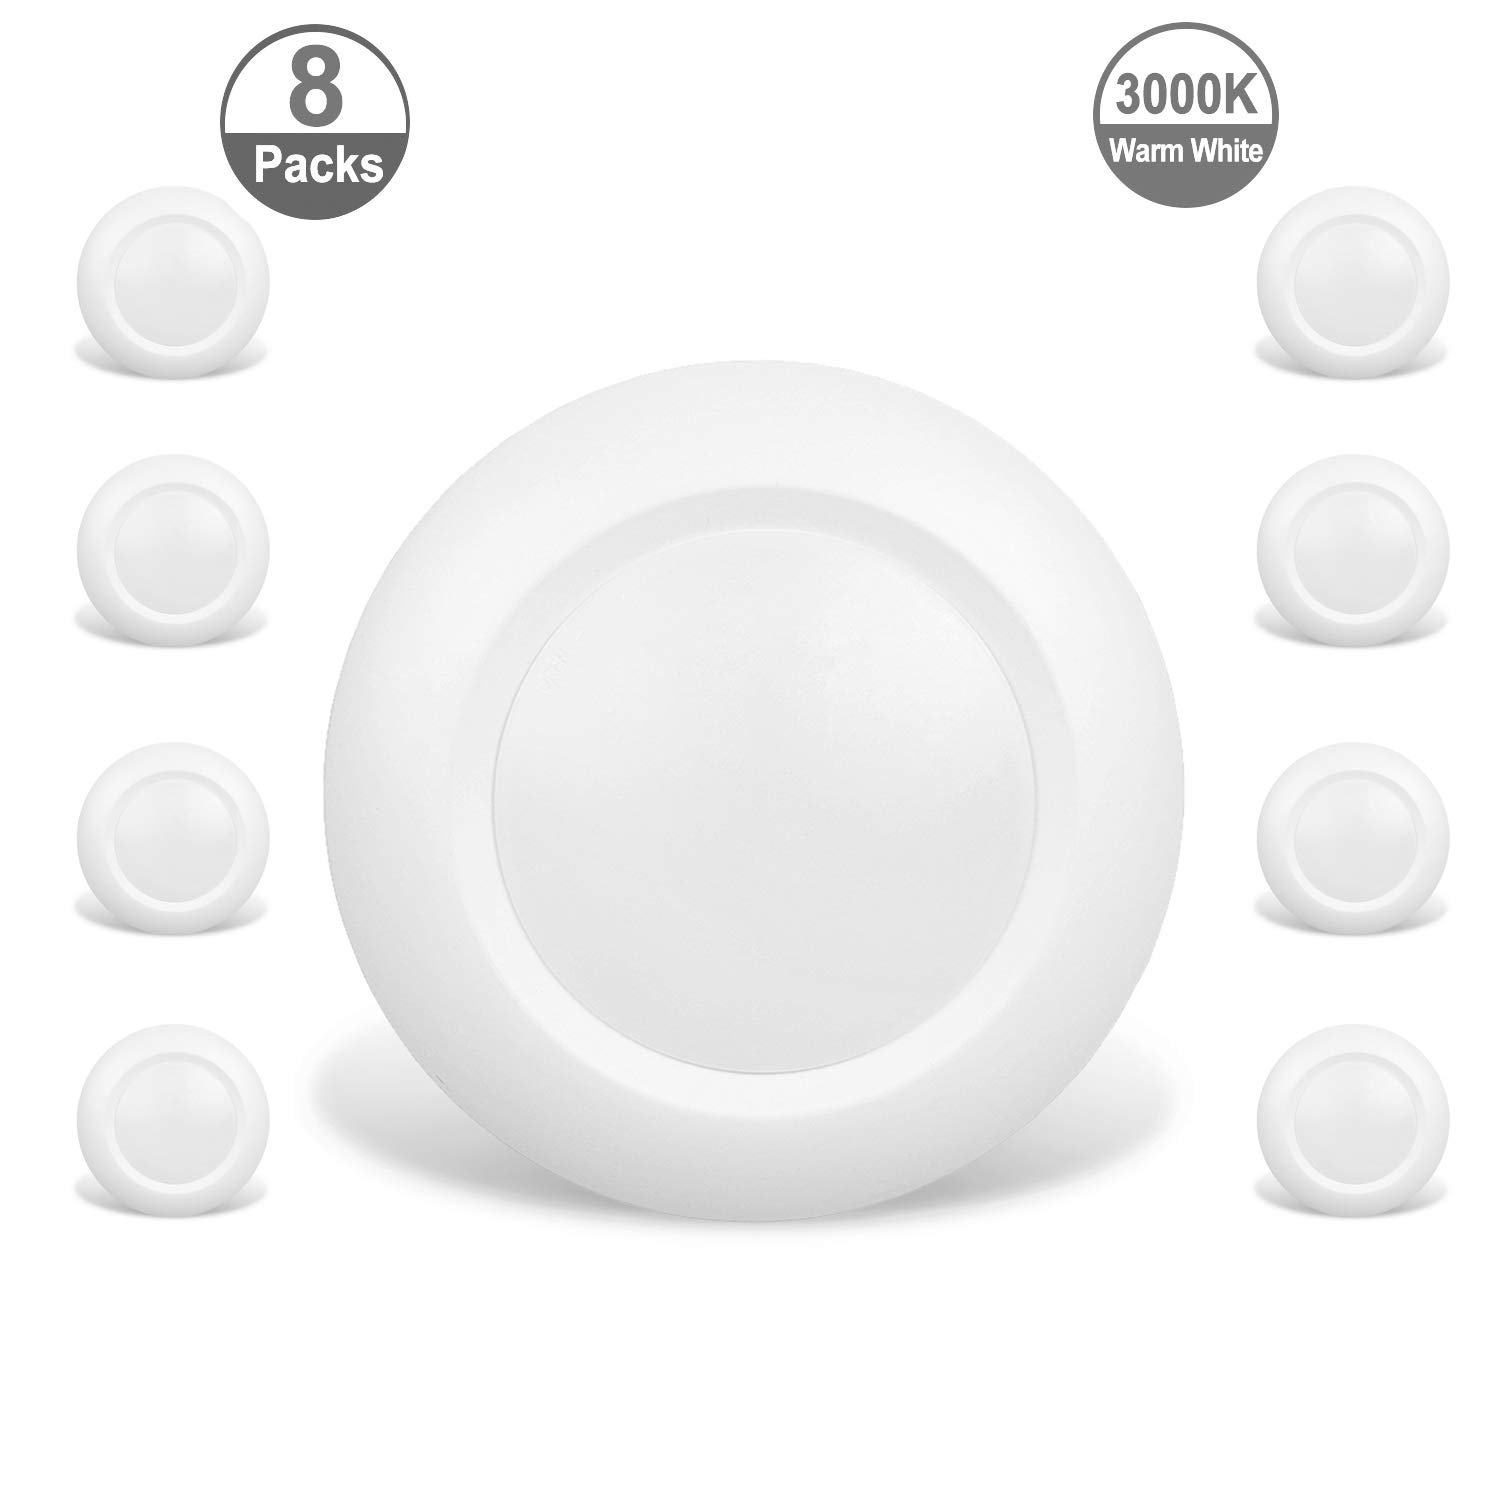 JULLISON 8 Packs 6 Inch LED Low Profile Recessed & Surface Mount Disk Light, Round, 15W, 900 Lumens, 3000K Warm White, CRI80, Driverless Design, Dimmable, Energy Star, ETL Listed, White